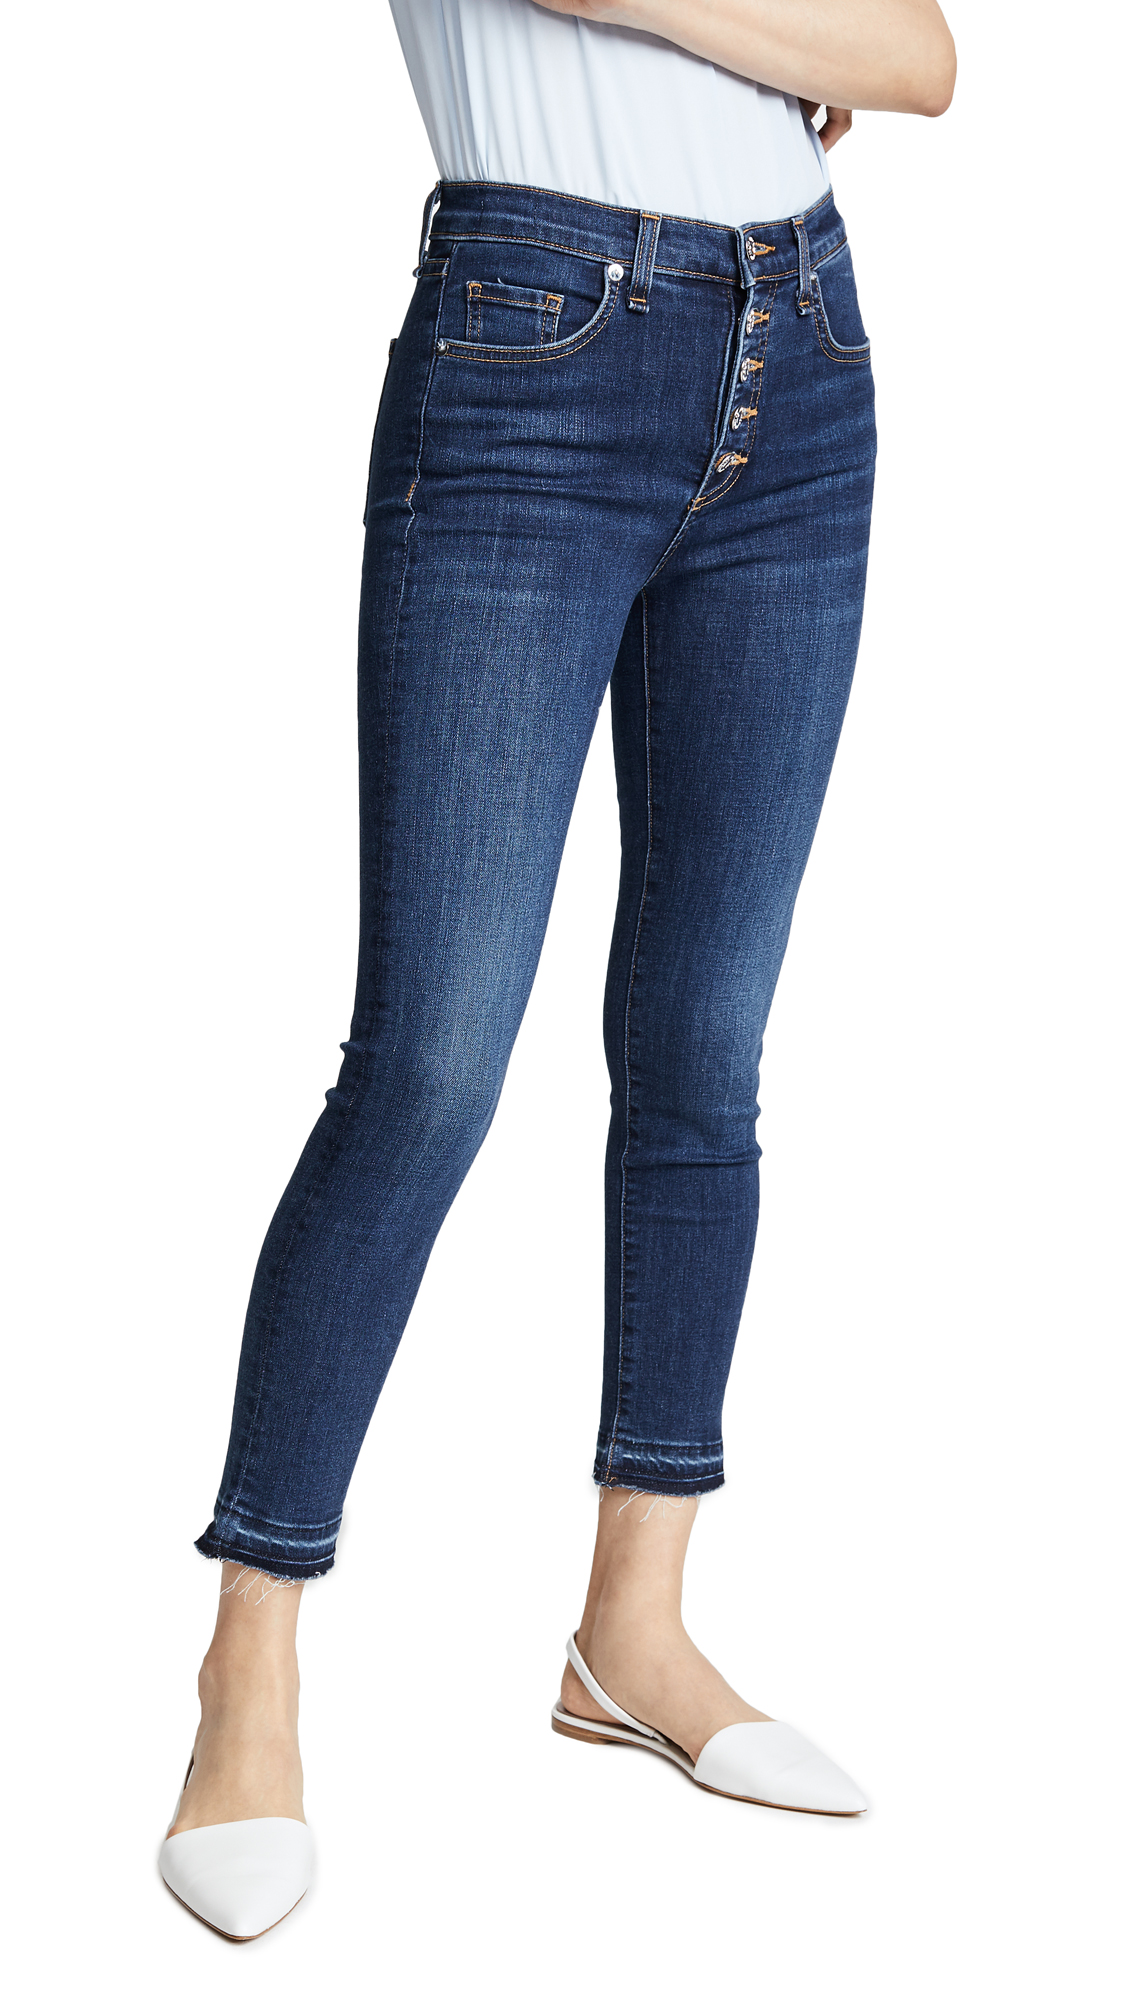 Veronica Beard Jean Debbie Jeans with Fraying